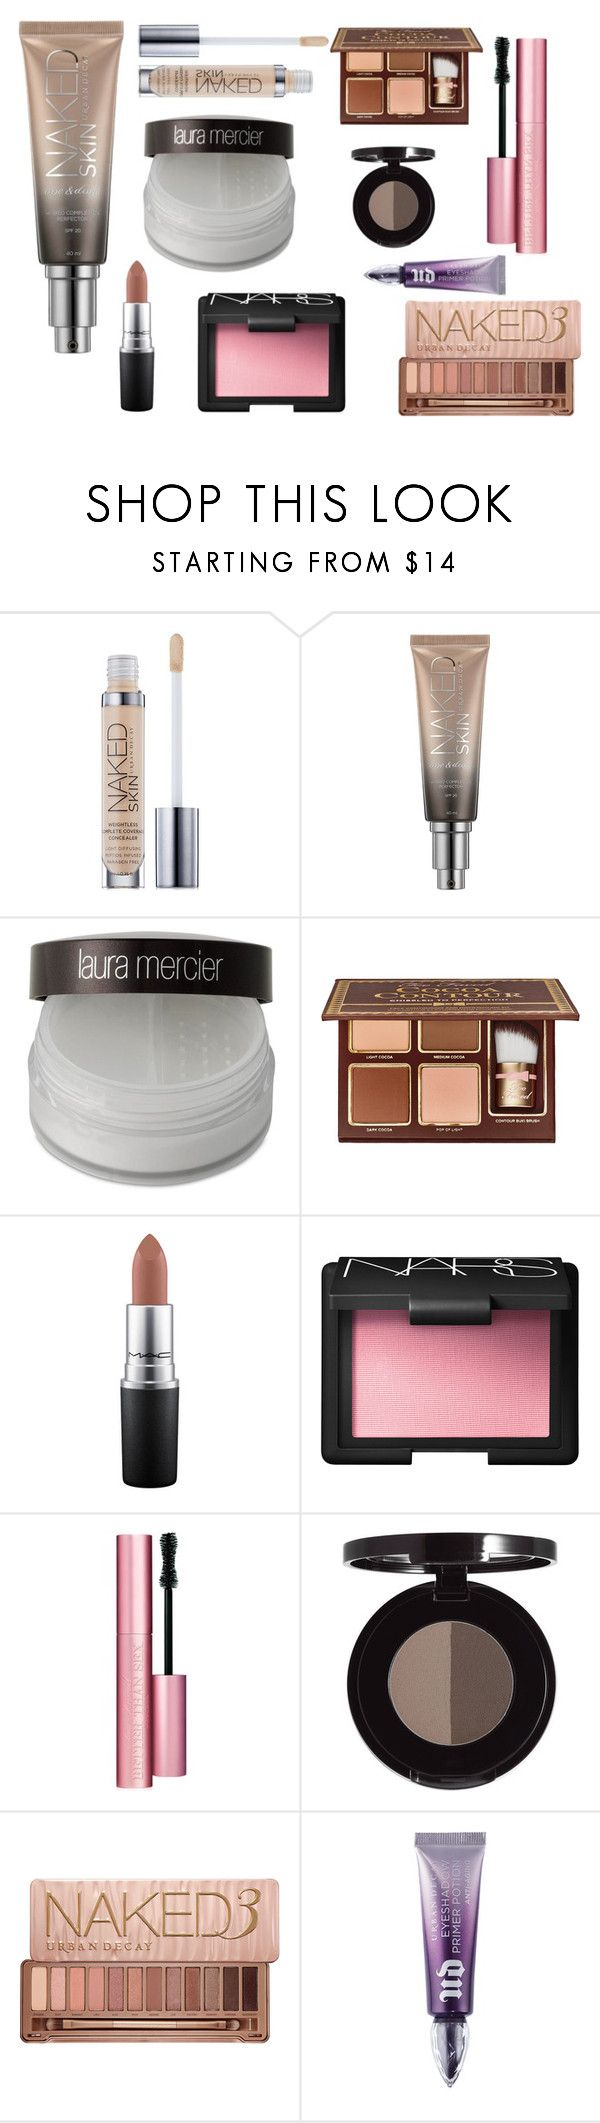 Everyday make-up routine by adri-sm on Polyvore featuring beauty, Urban Decay, Laura Mercier, NARS Cosmetics, Too Faced Cosmetics and MAC Cosmetics